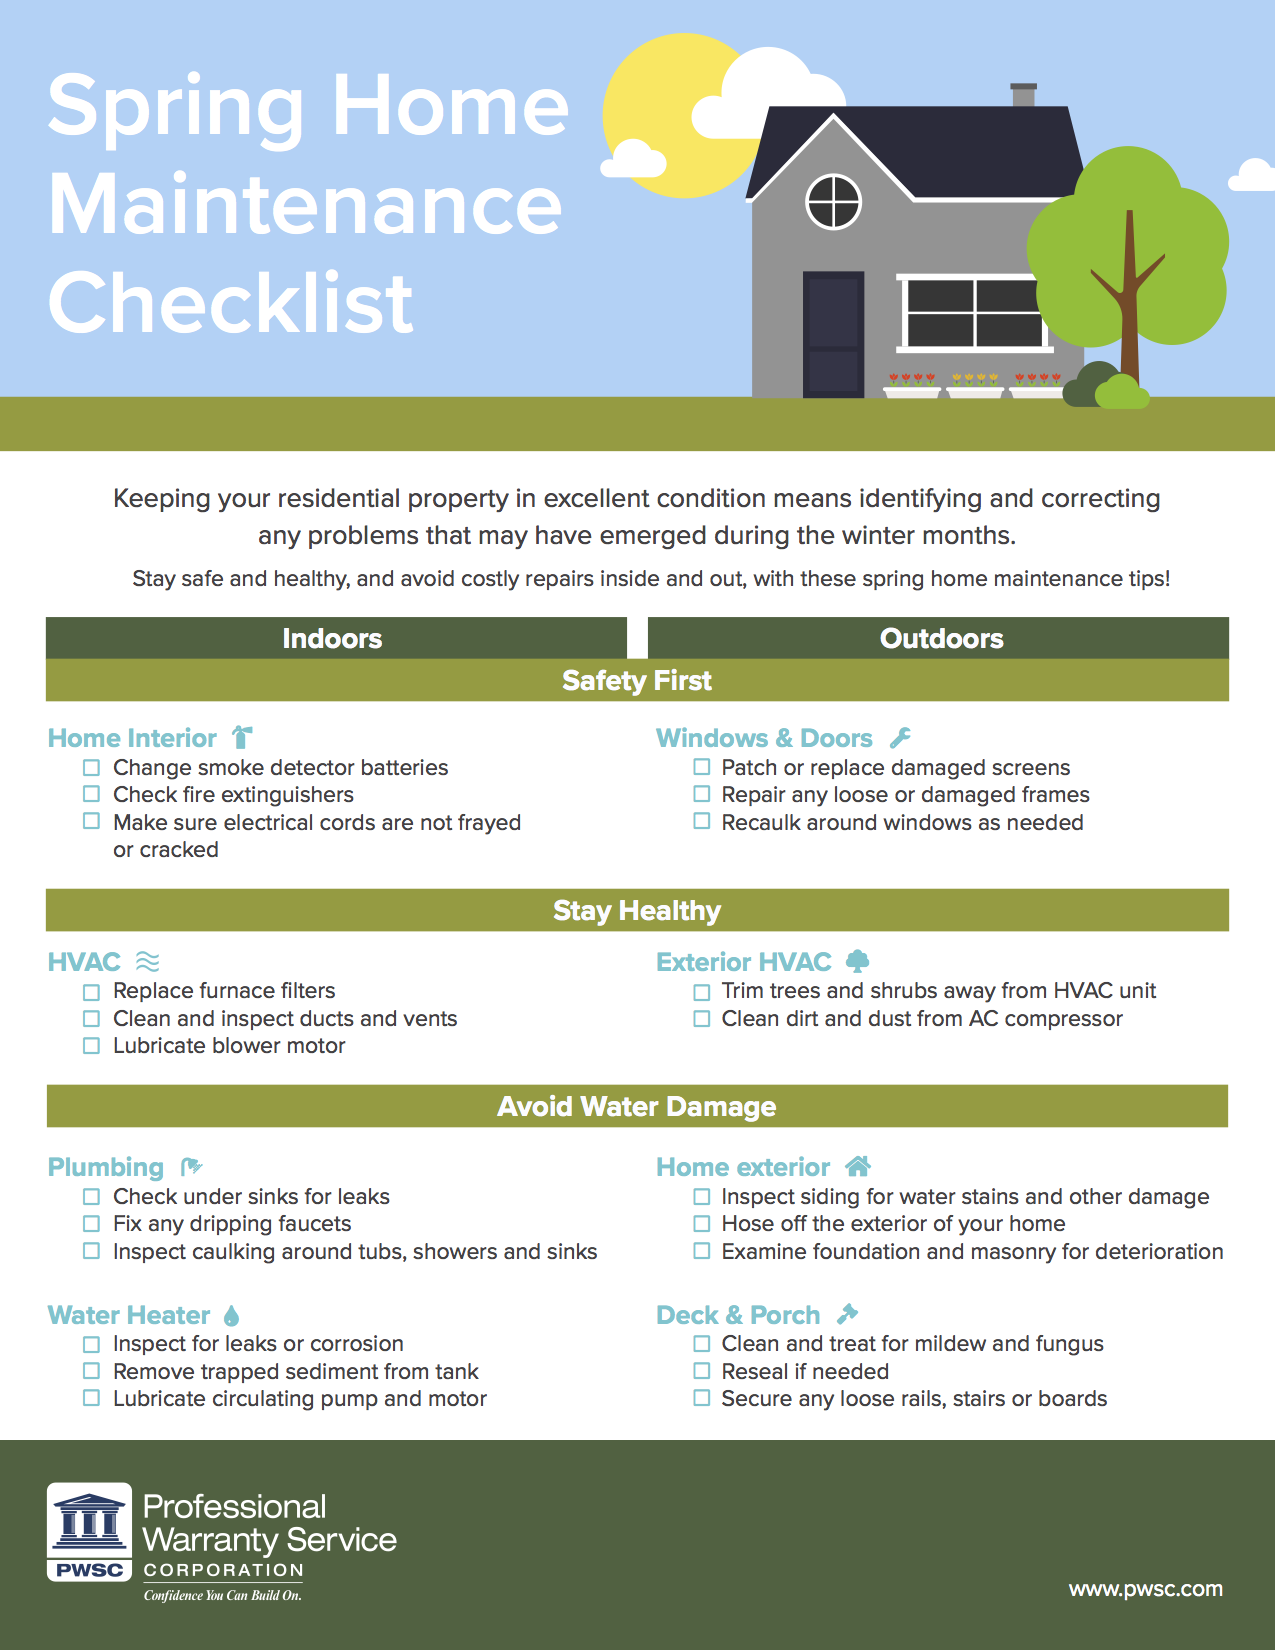 Spring Home Maintenance Guide for Homeowners Infographic